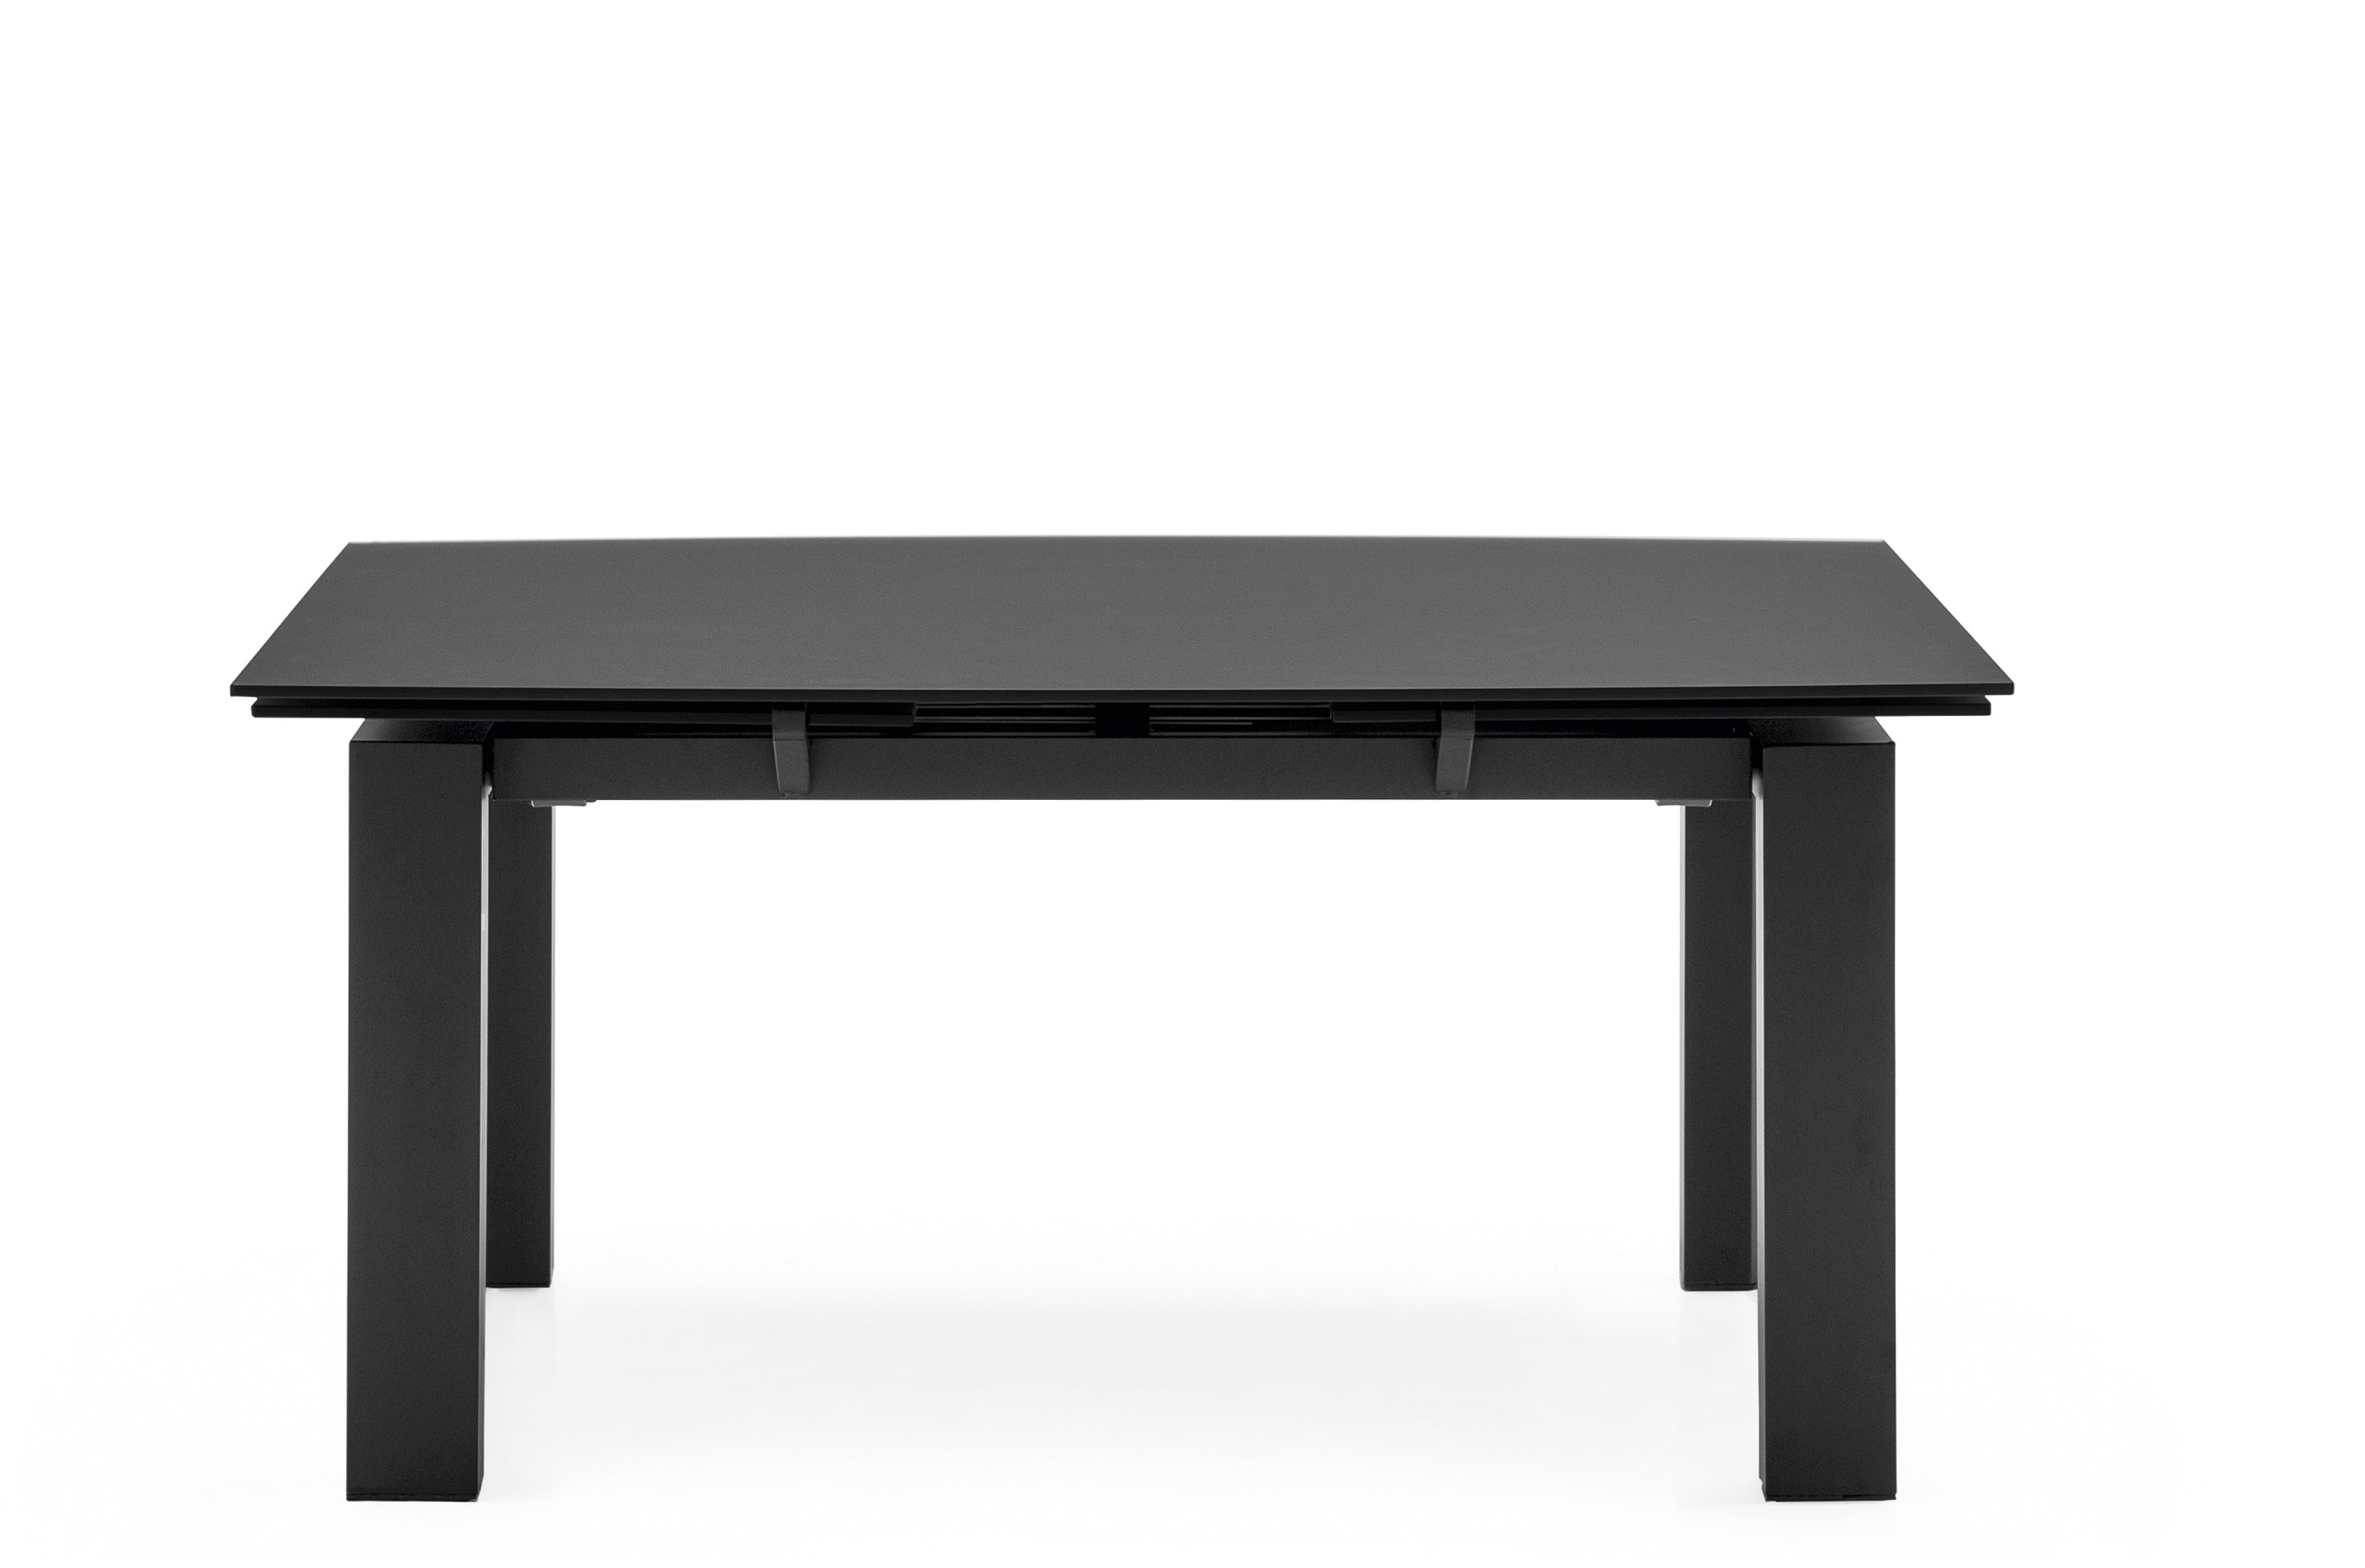 MOVING Extending table by Calligaris design Studio 28